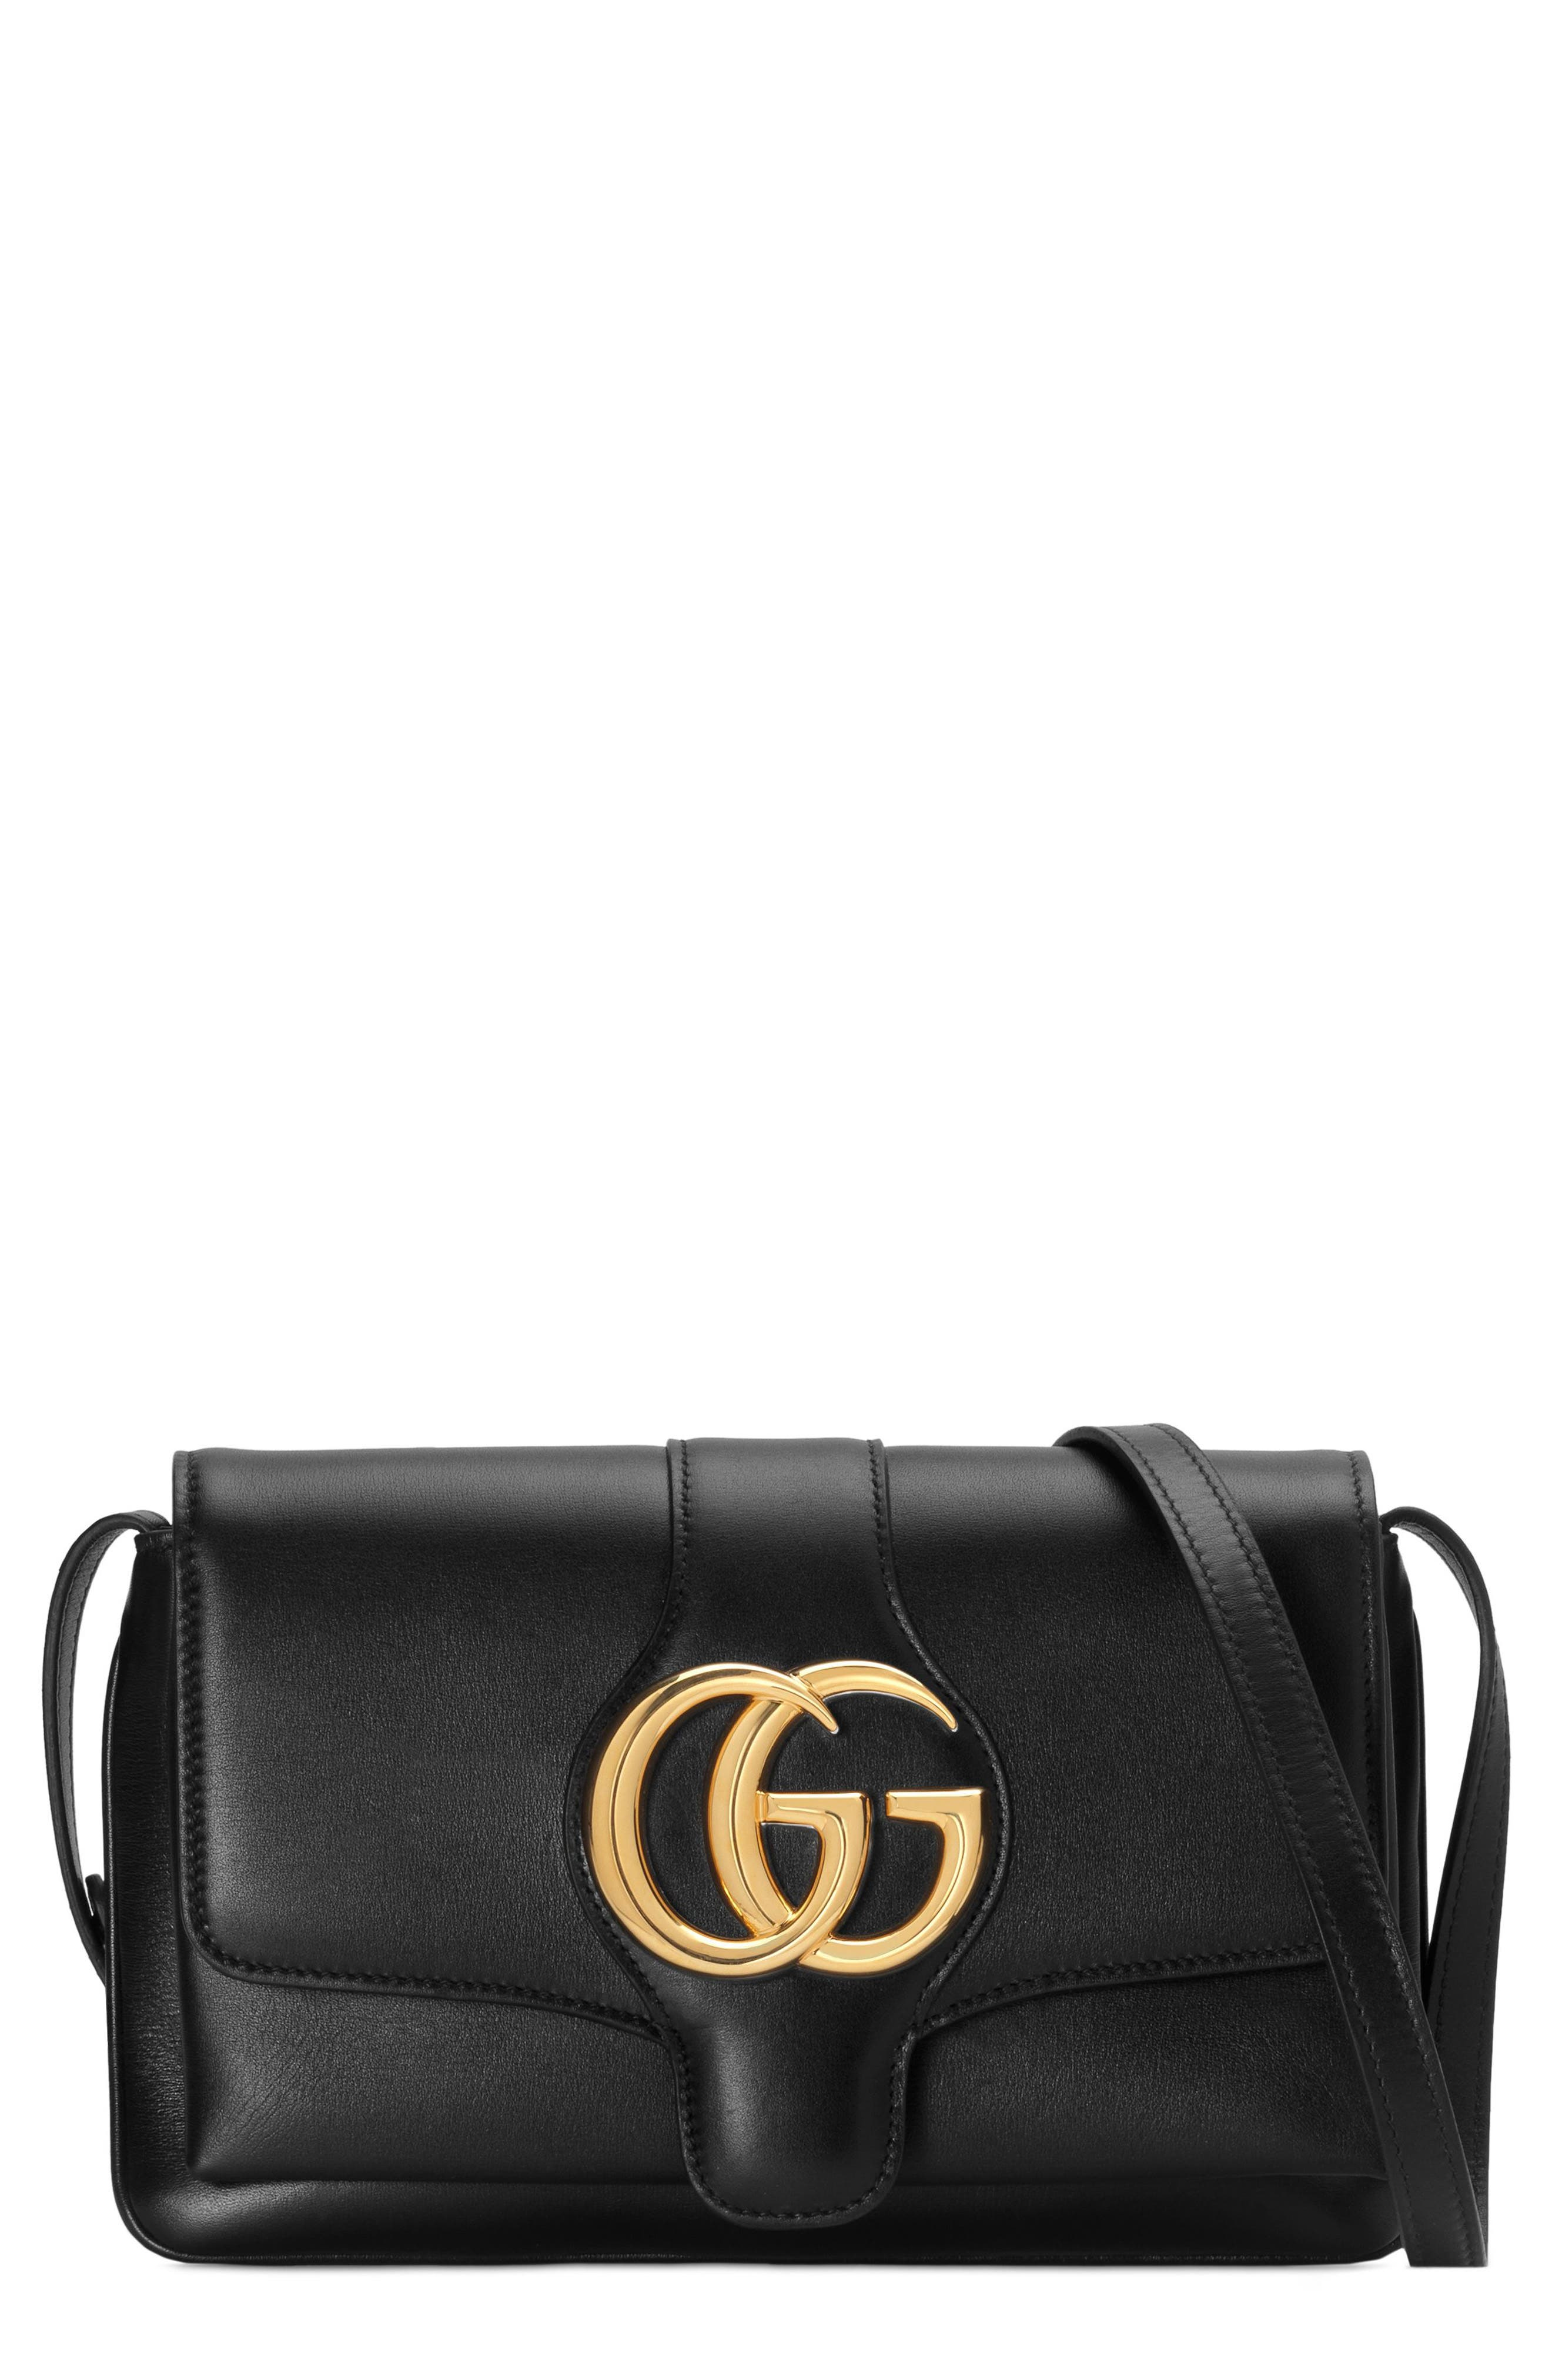 GUCCI, Small Arli Convertible Shoulder Bag, Main thumbnail 1, color, NERO